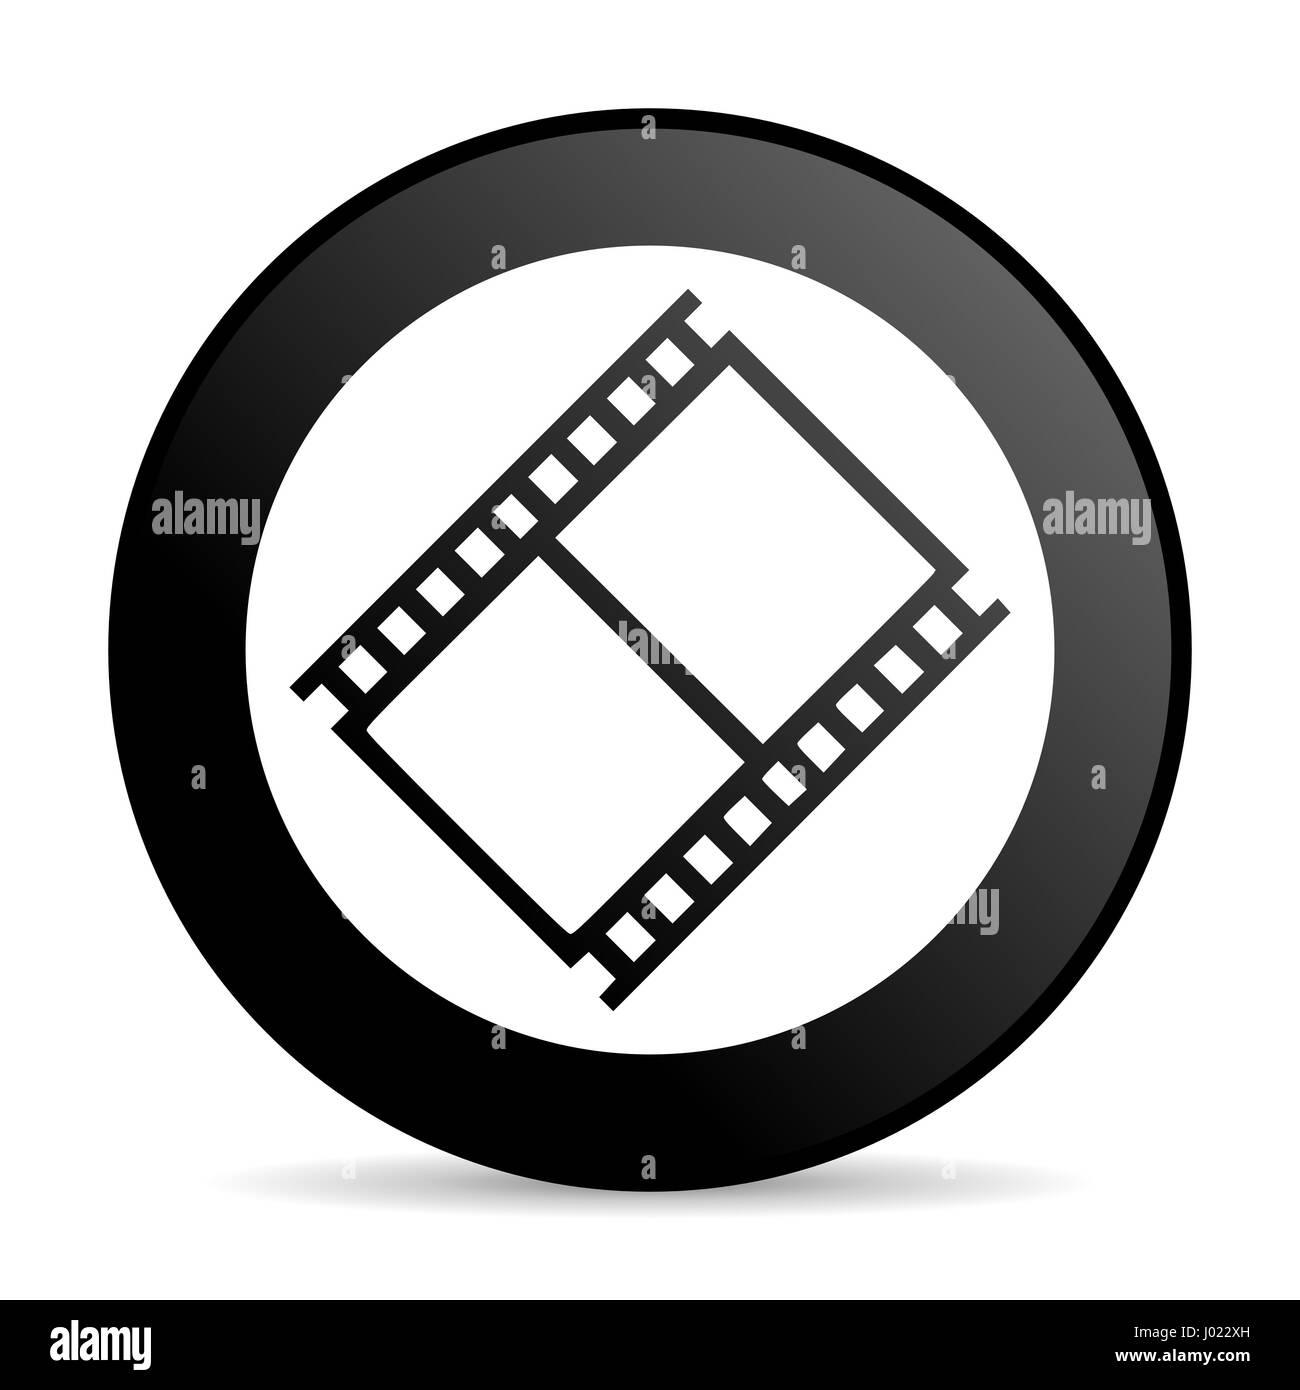 Color Negative Film Black And White Stock Photos Images Alamy